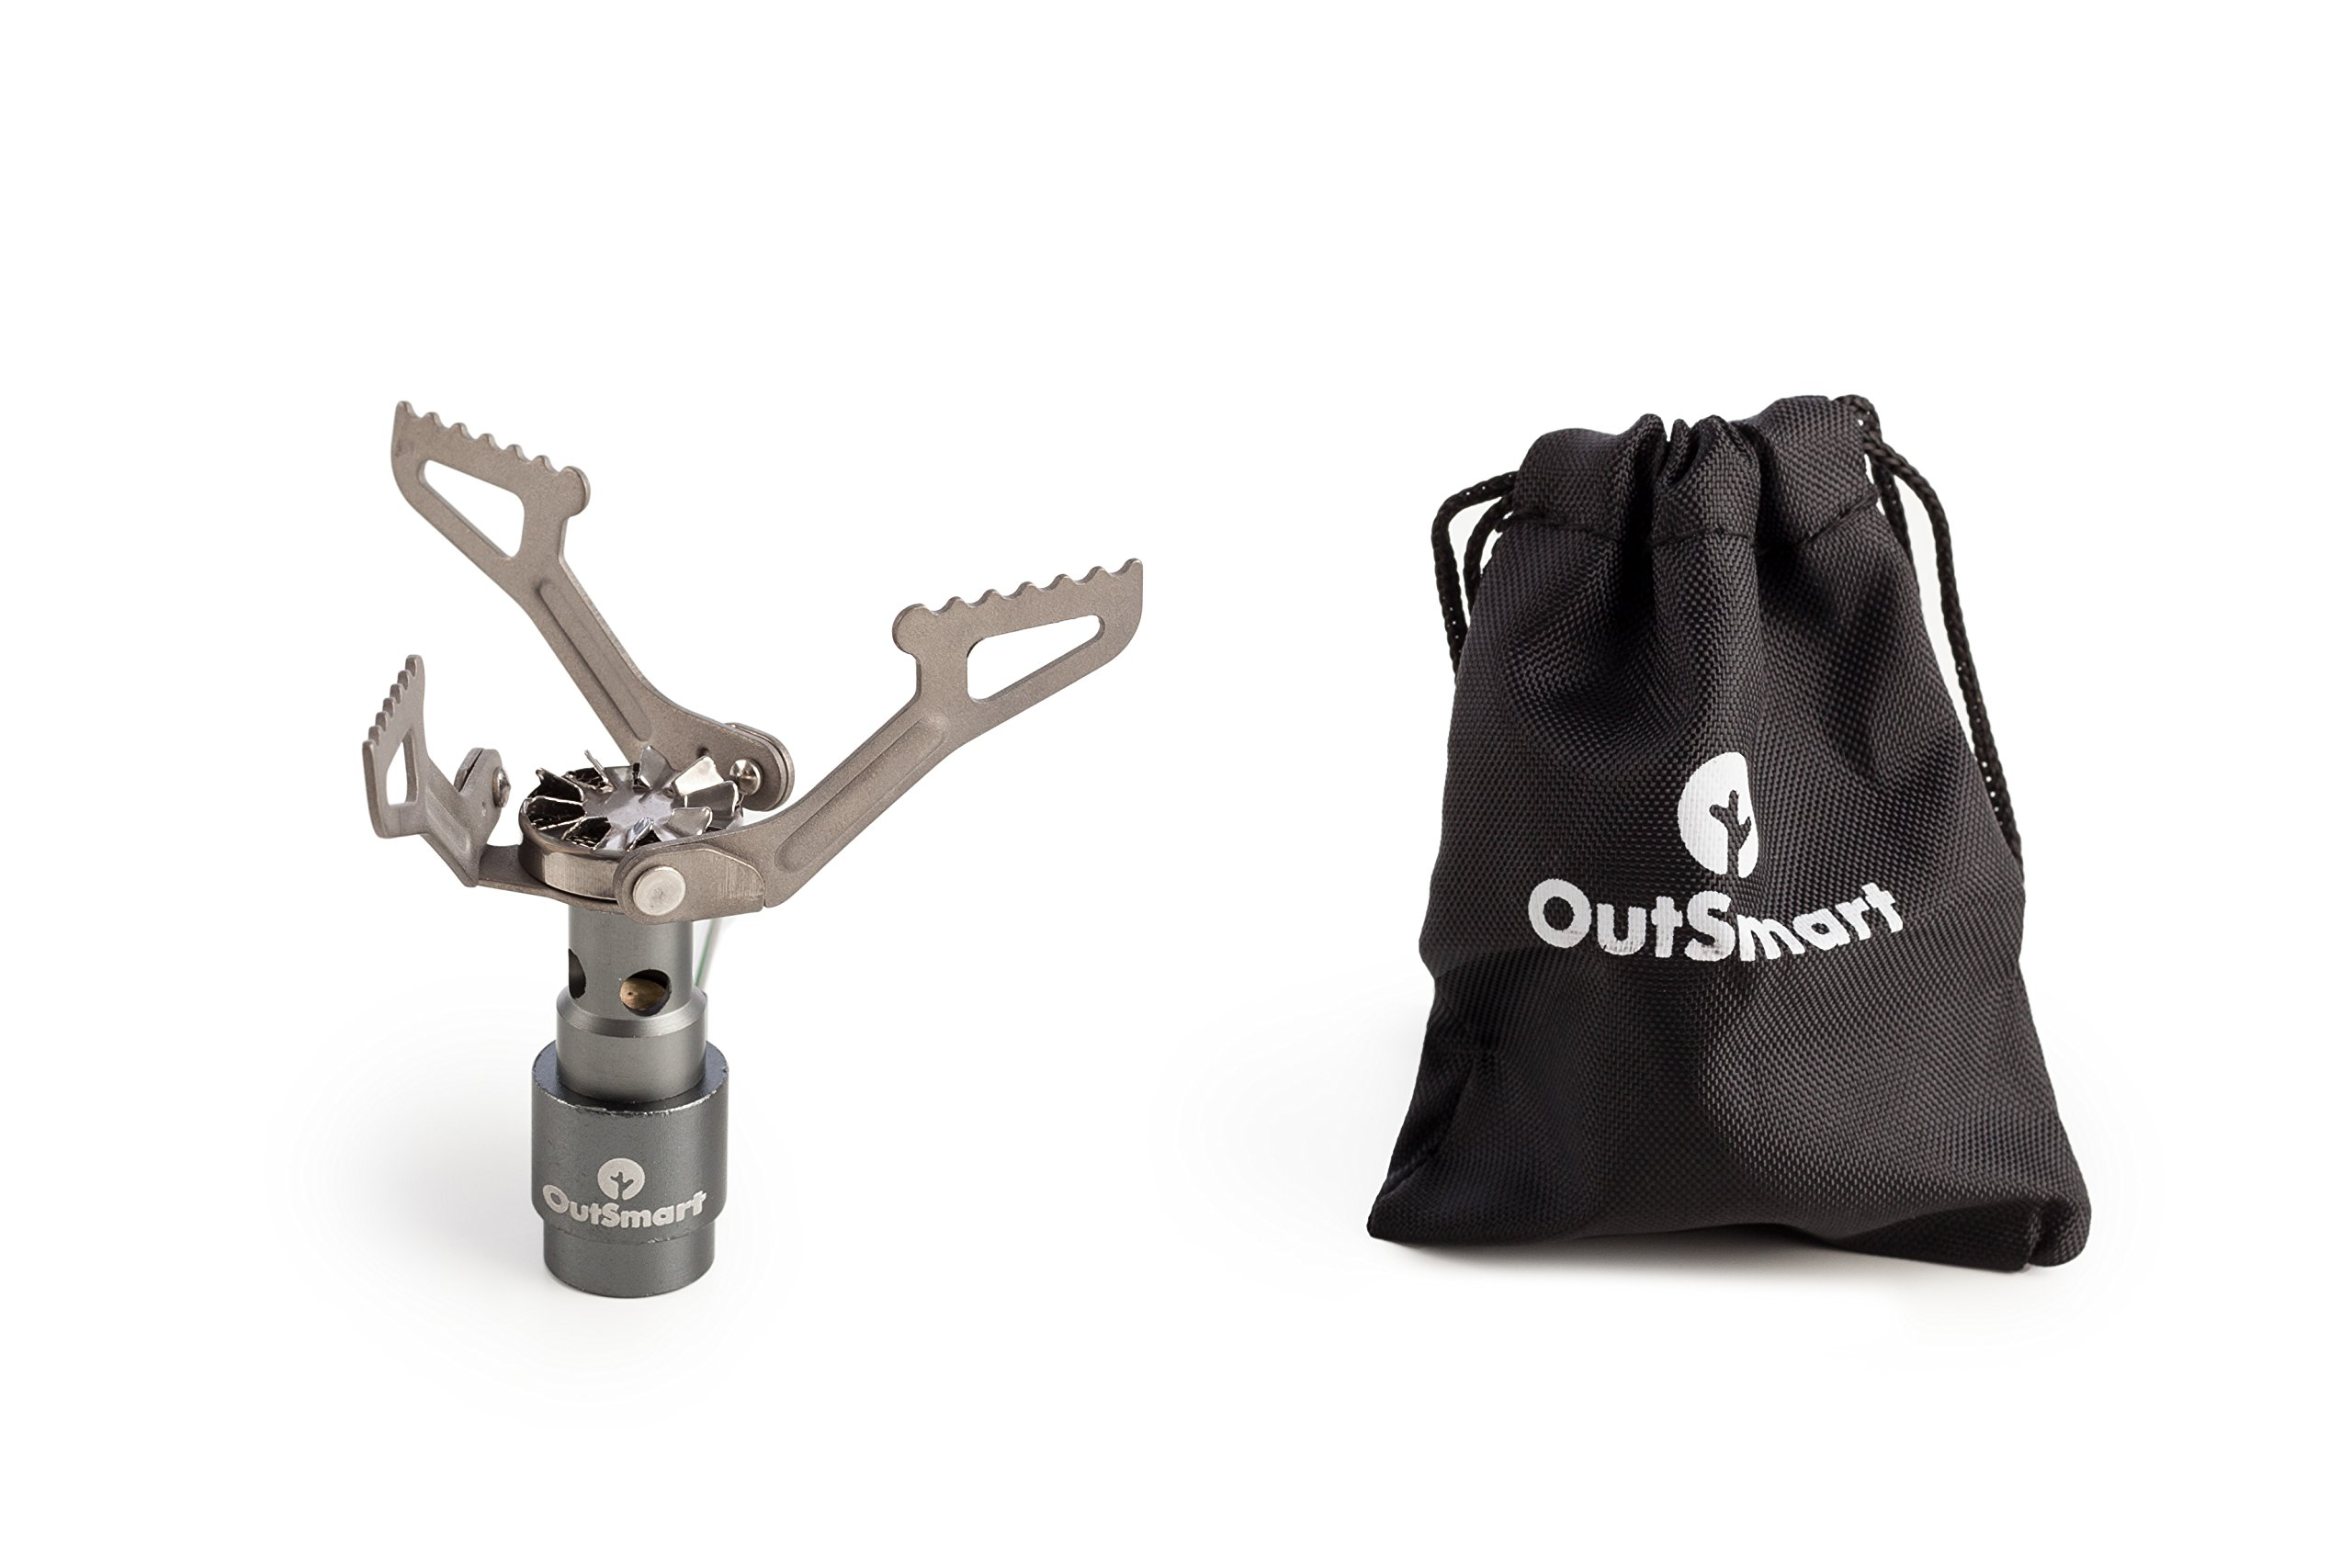 OutSmart Ultralight Titanium Gas Stove | Single Burner Portable Stove for Backpacking, Outdoor Camping and Hiking | Because a House While Traveling Doesn't Come with a Travel Stove by OutSmart